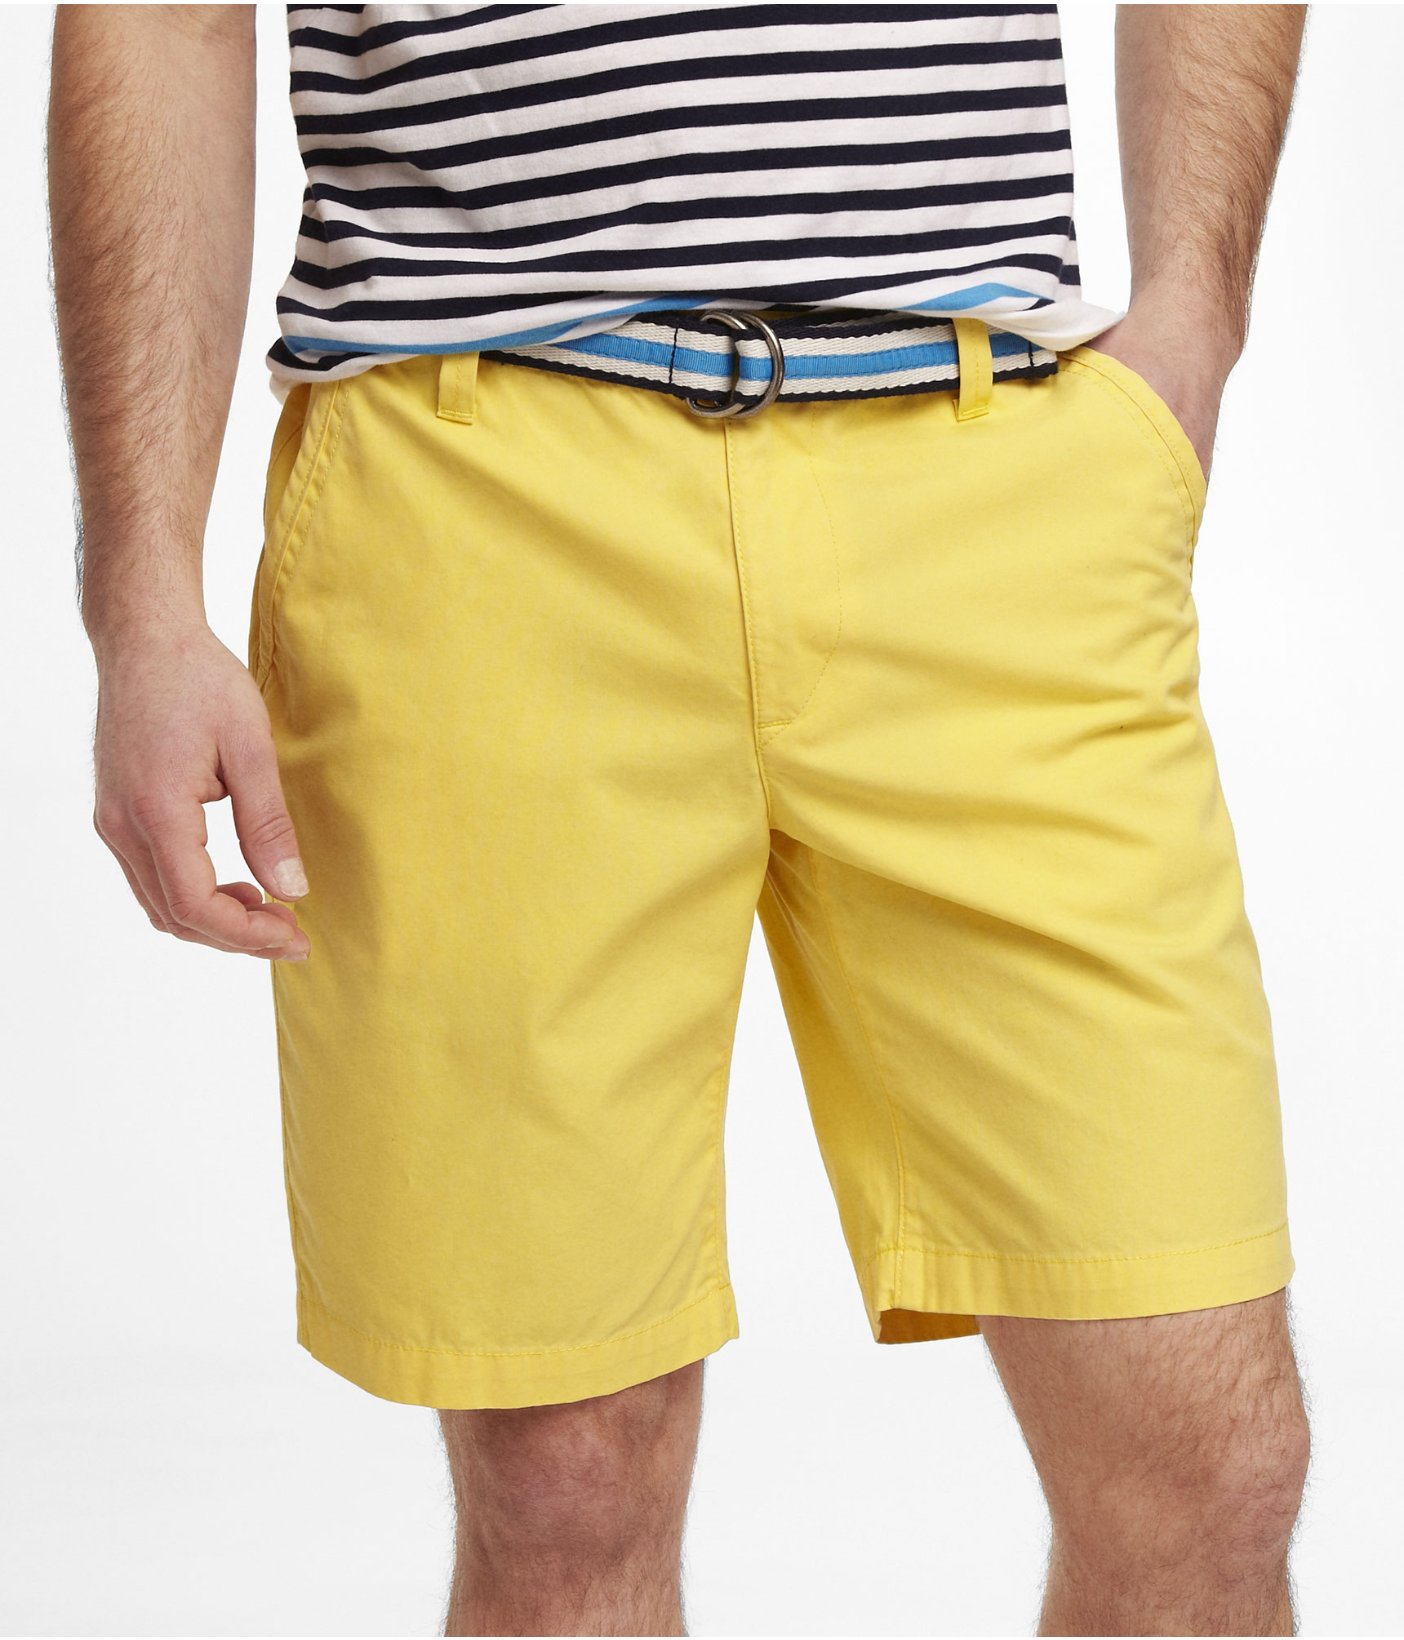 f8215b6a72 Express 10 Inch Belted Lennox Shorts in Yellow for Men - Lyst